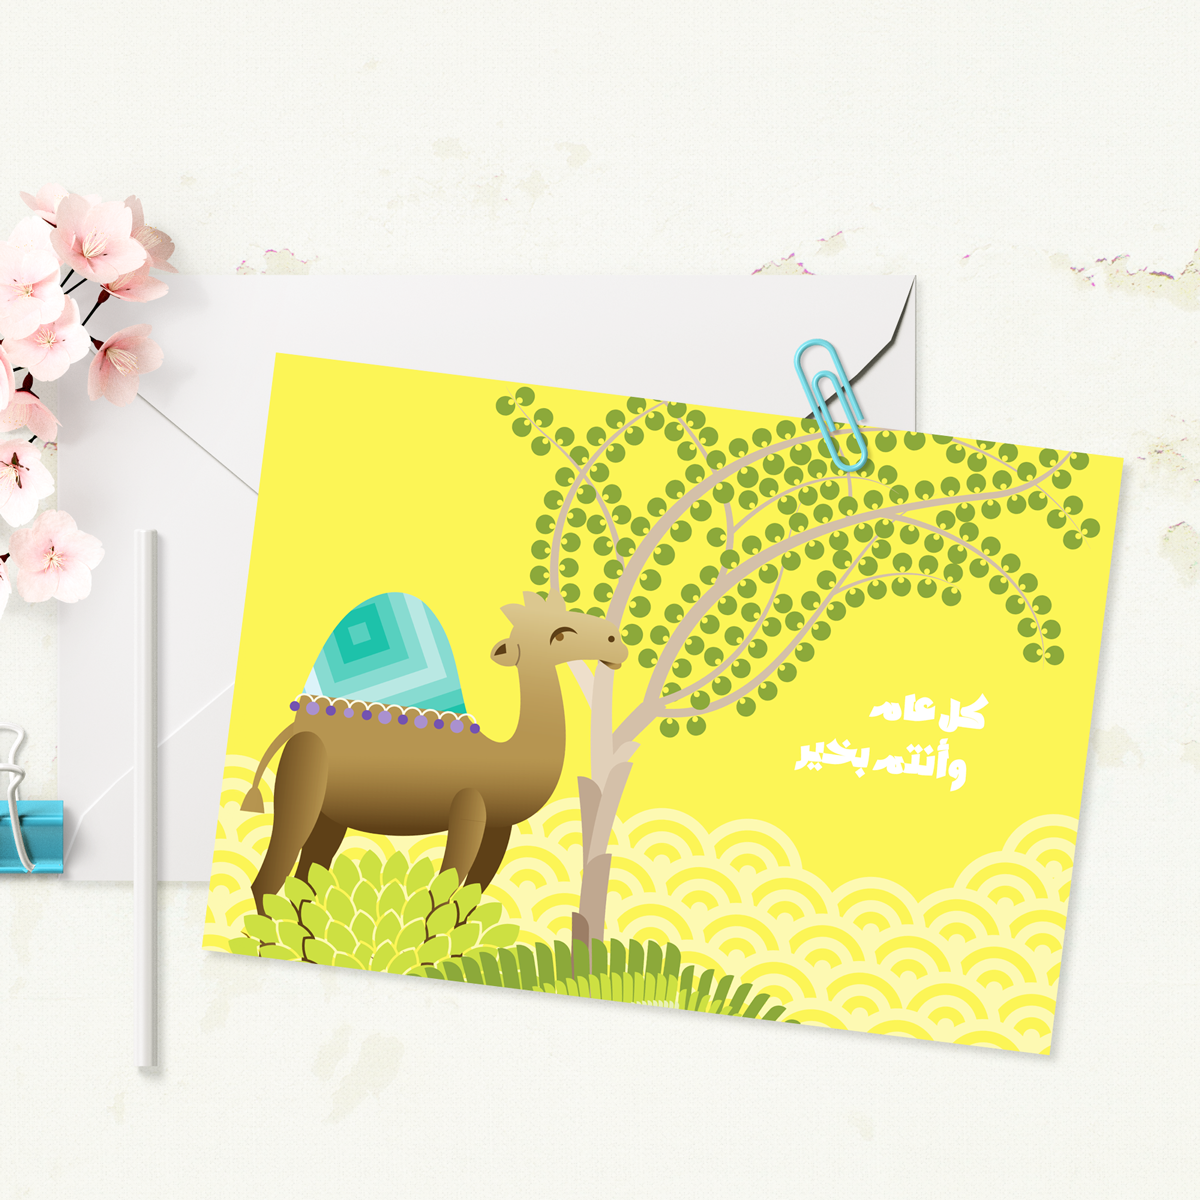 Yislamoo | Order Ramadan and Eid Greeting Cards